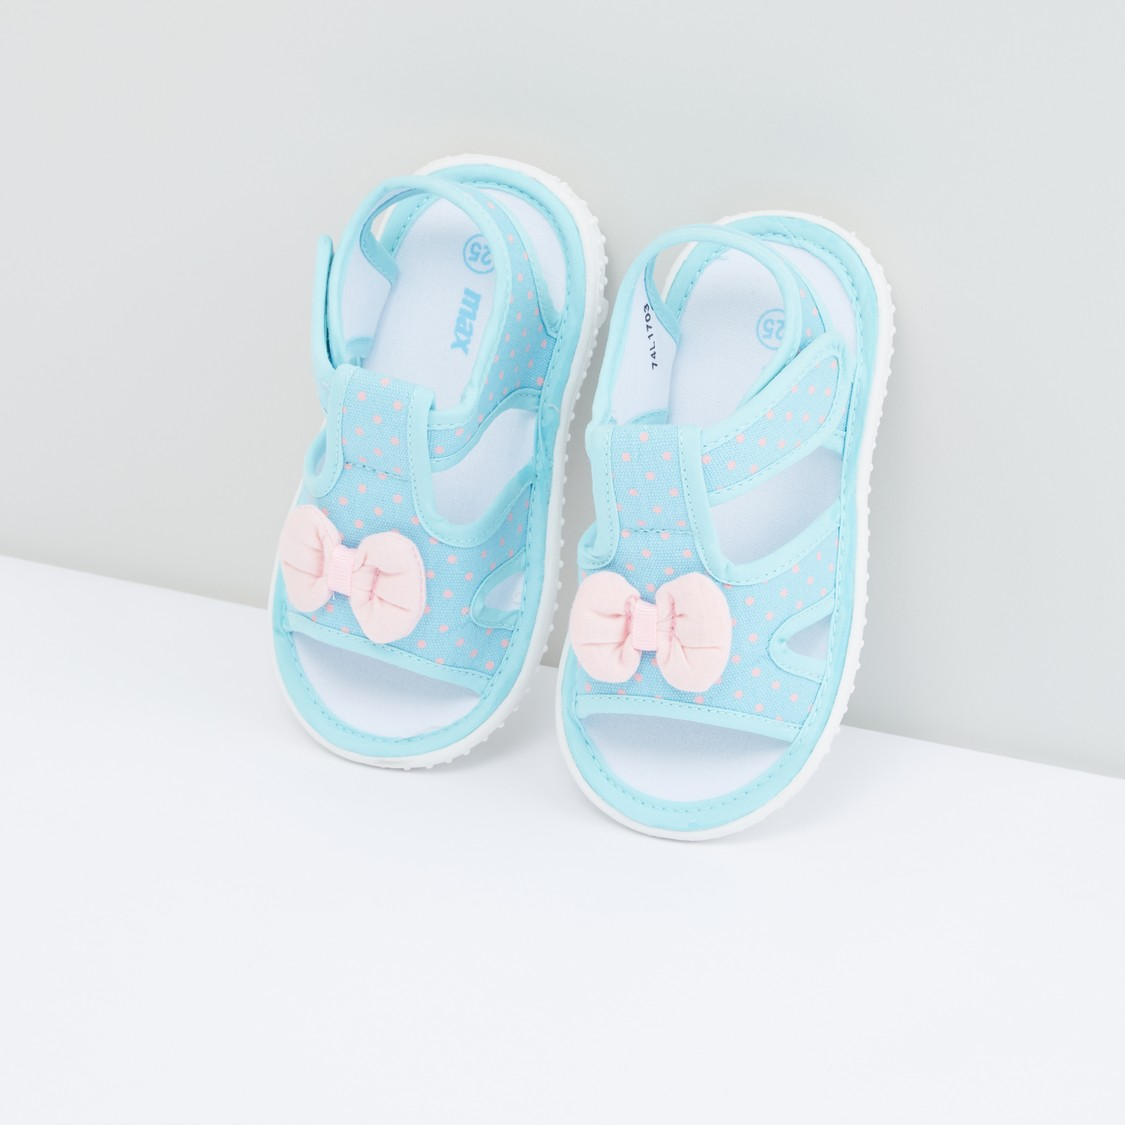 Polka Dot Printed Sandals with Bow Detail